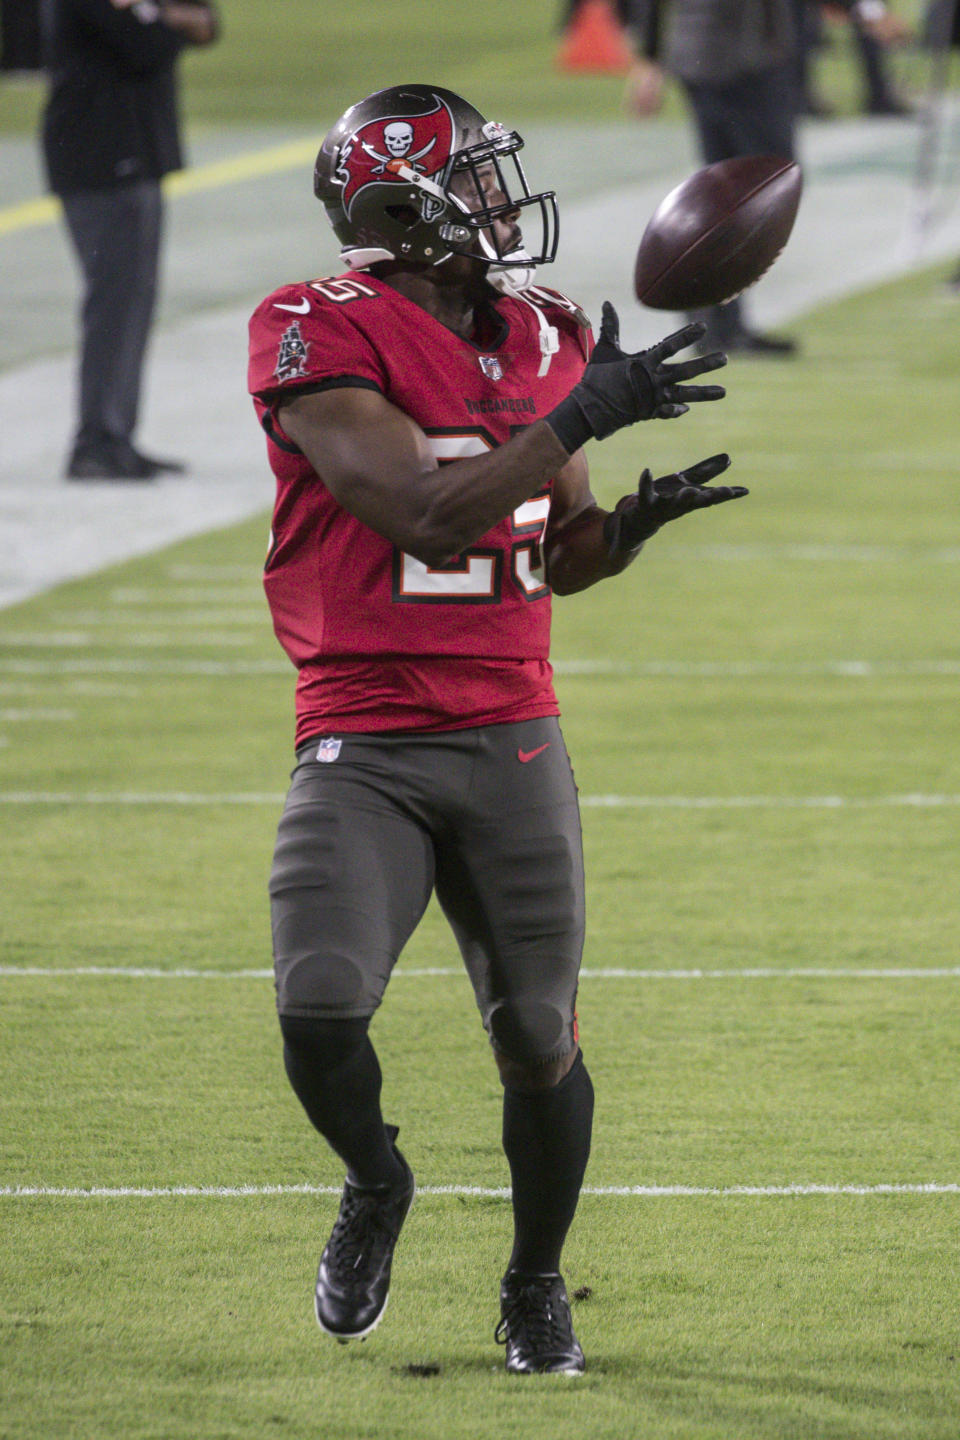 Tampa Bay Buccaneers running back LeSean McCoy (25) catches a pass during warm-ups prior to an NFL game against the New Orleans Saints, Sunday, Nov. 8, 2020 in Tampa, Fla. The Saints defeated the Buccaneers 38-3. (Margaret Bowles via AP)